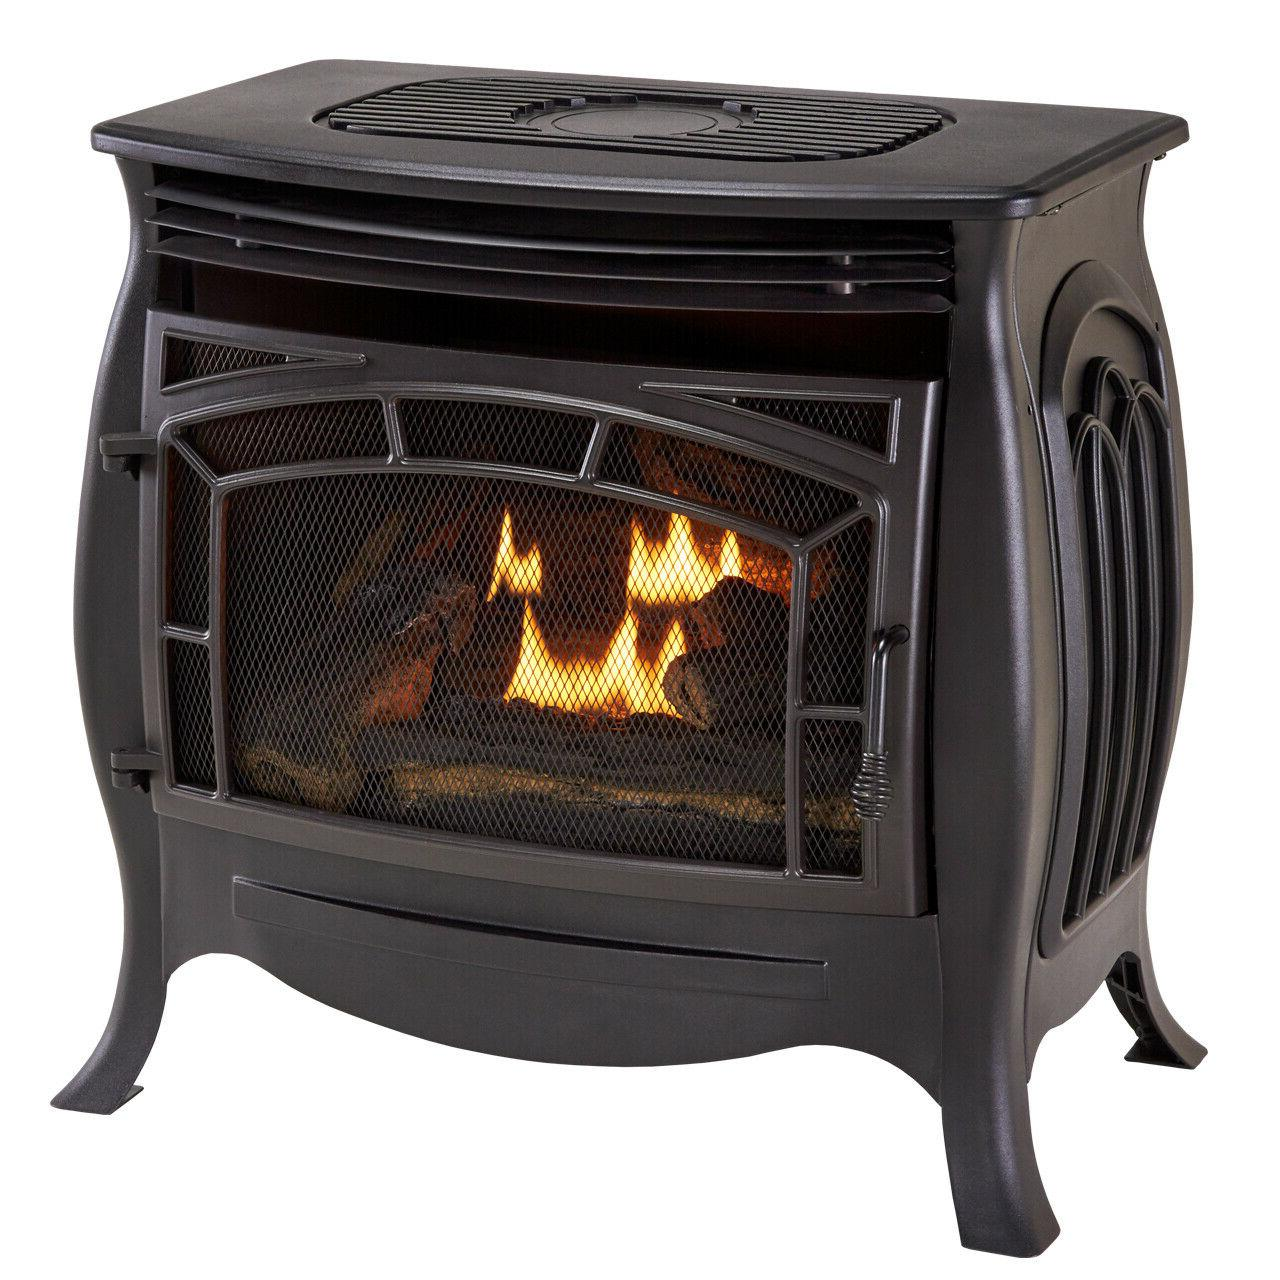 dual fuel ventless gas stove 26 000